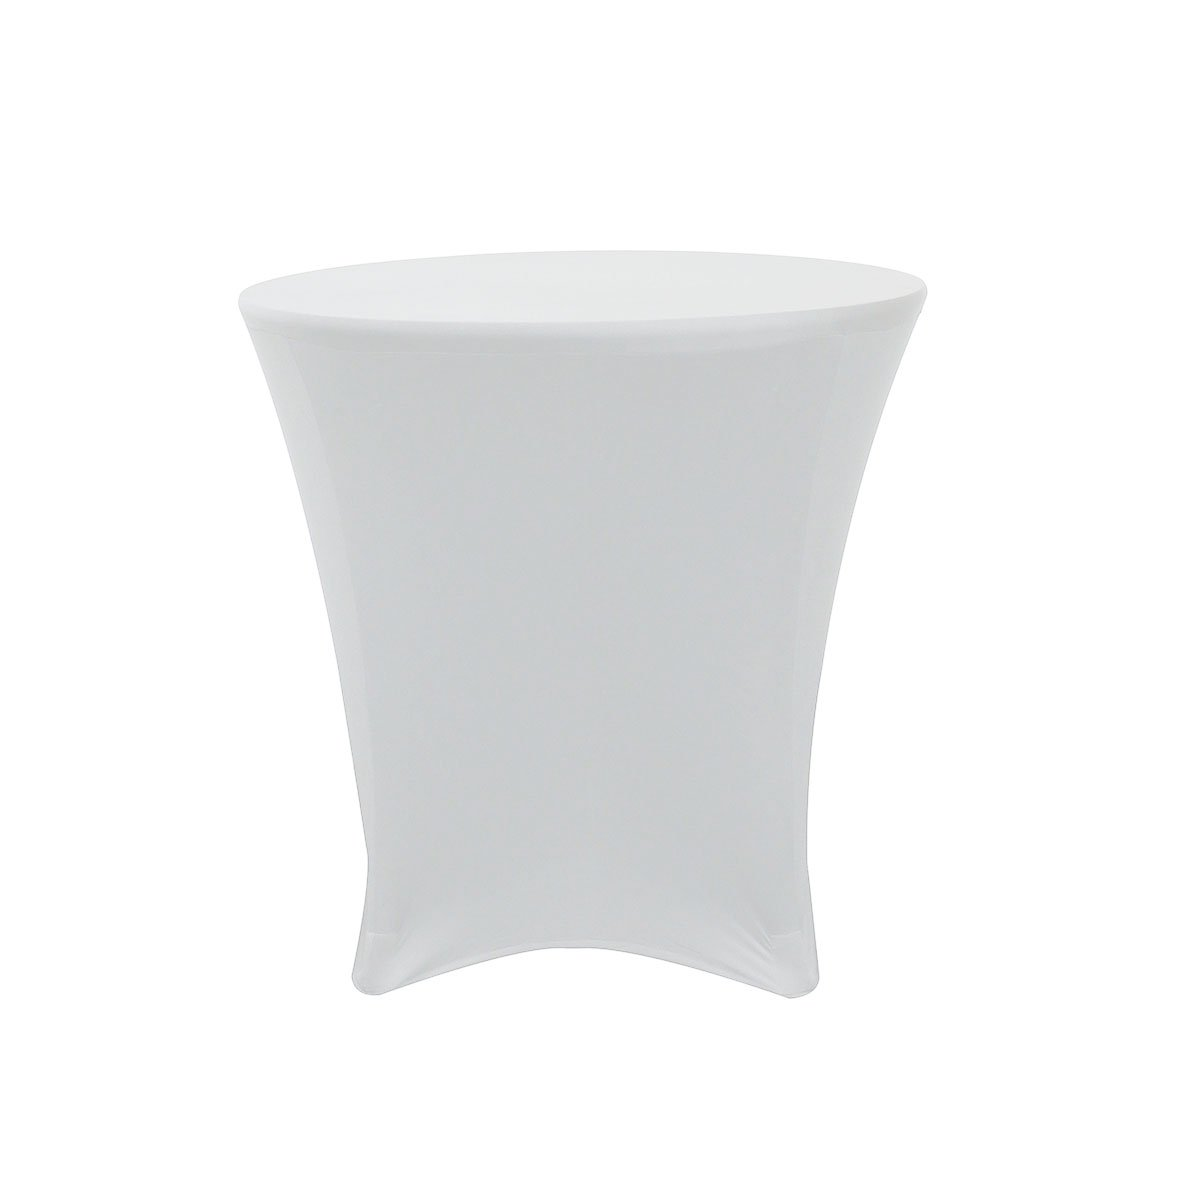 Your Chair Covers - 30 x 30 inch Lowboy Cocktail Round Stretch Spandex Table Cover White